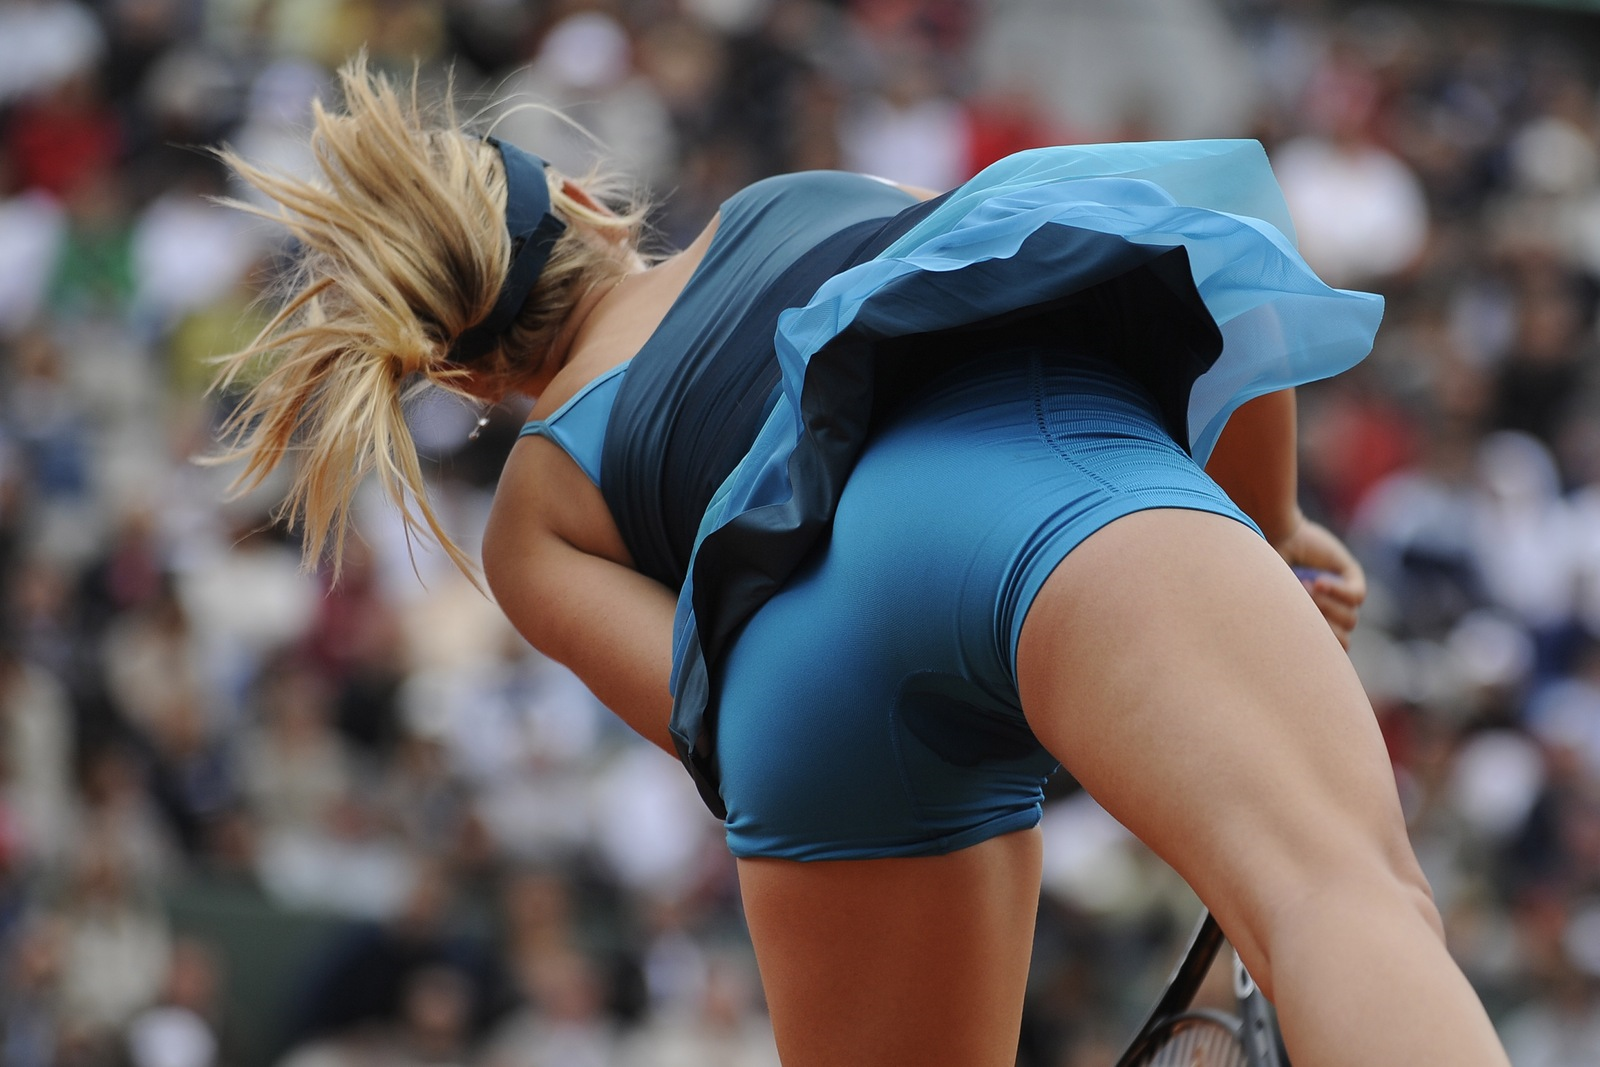 Maria Sharapova - arsch and Legs